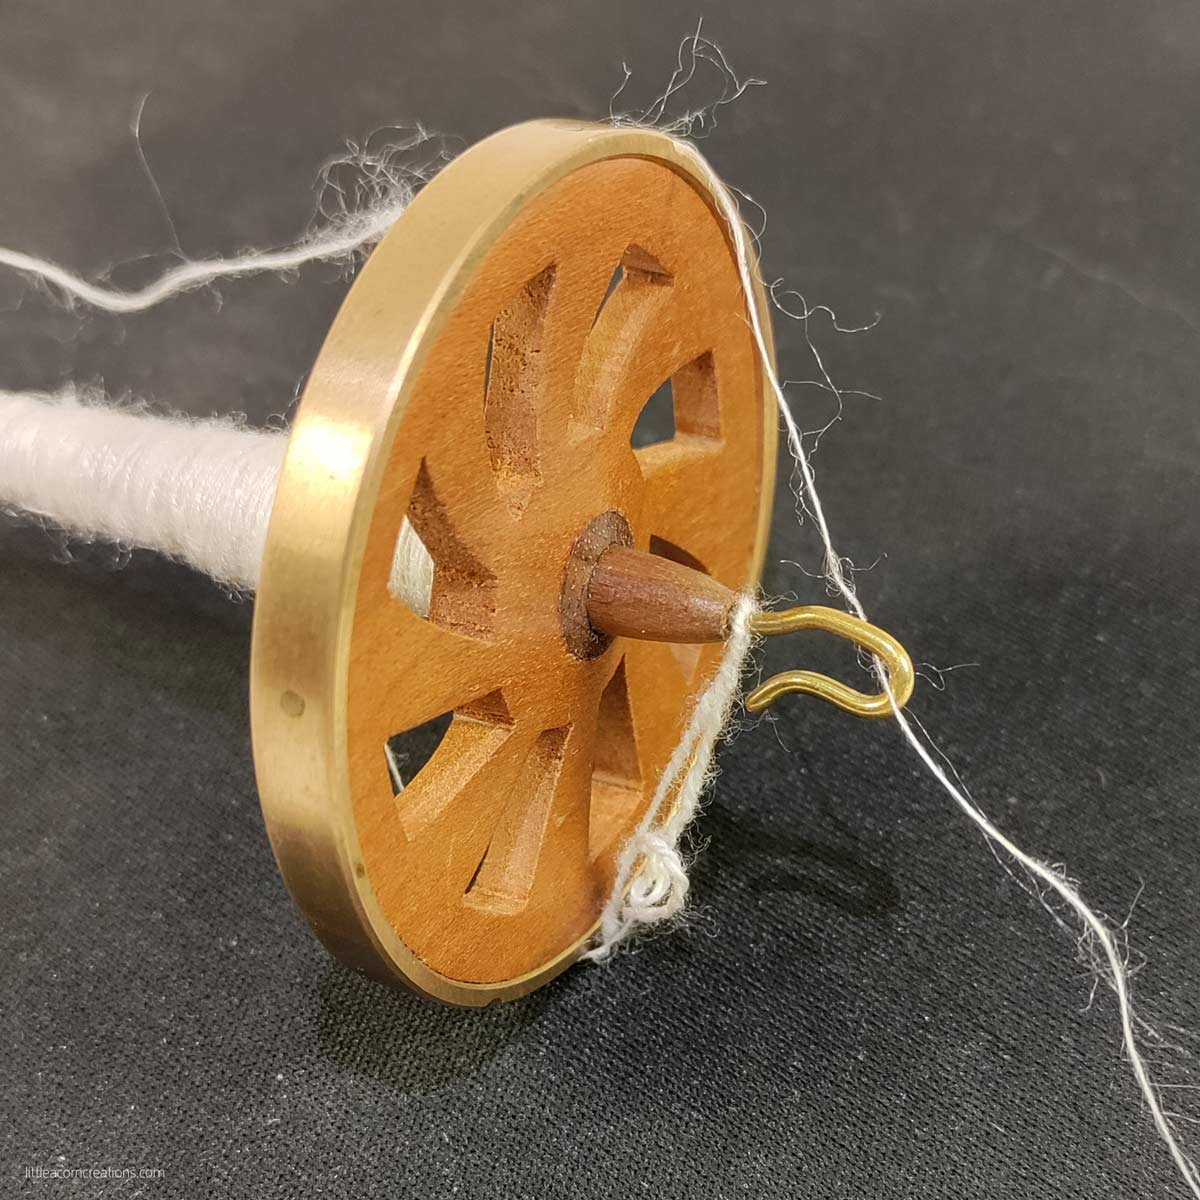 closeup of a spindle with chain ply on the fly and some single. there is some fuzz around the yarn.